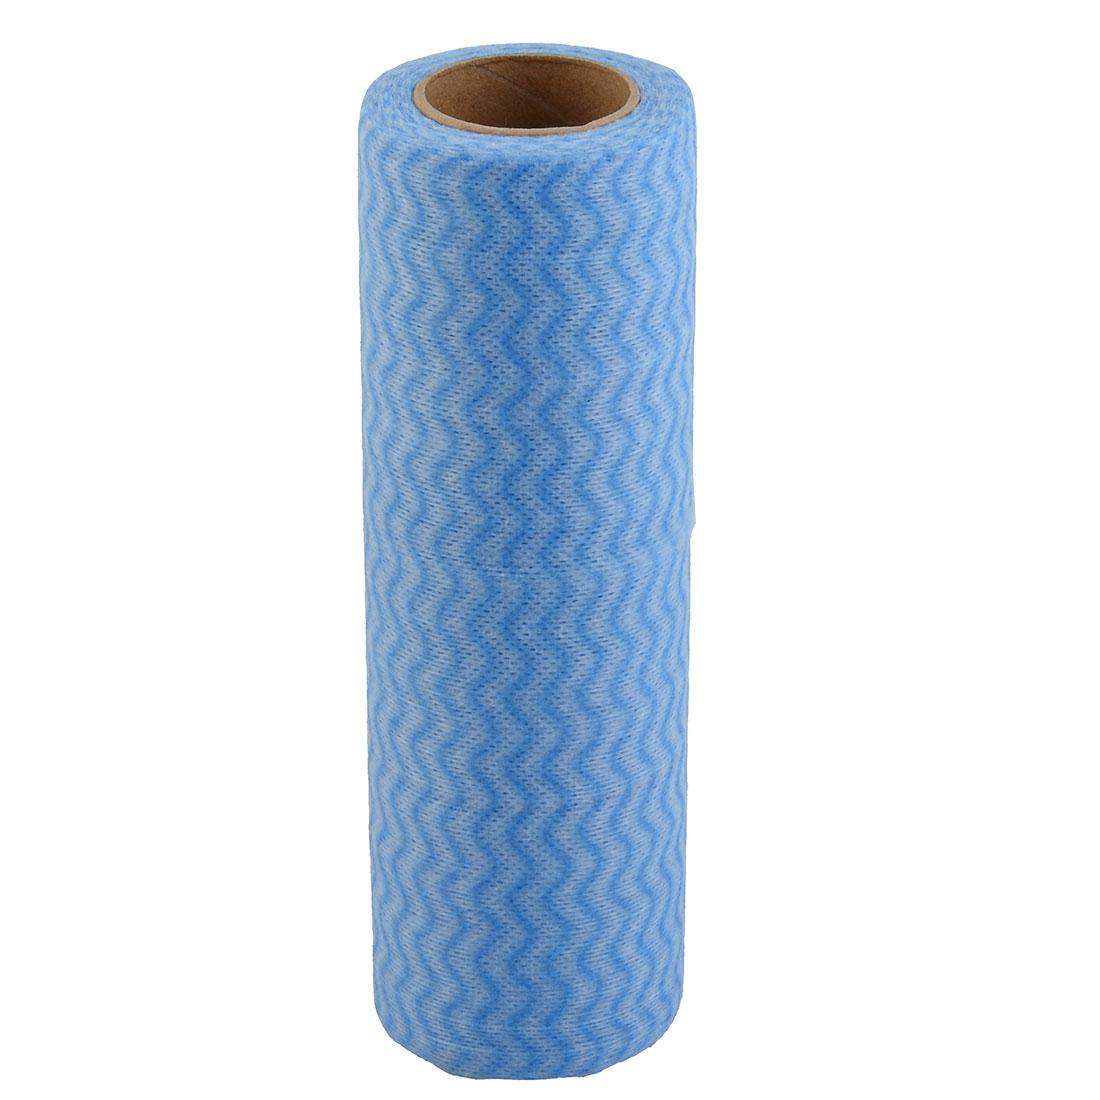 Kitchen Non-woven Fabric Wave Pattern Pot Dish Washable Cleaning Cloth Roll Blue